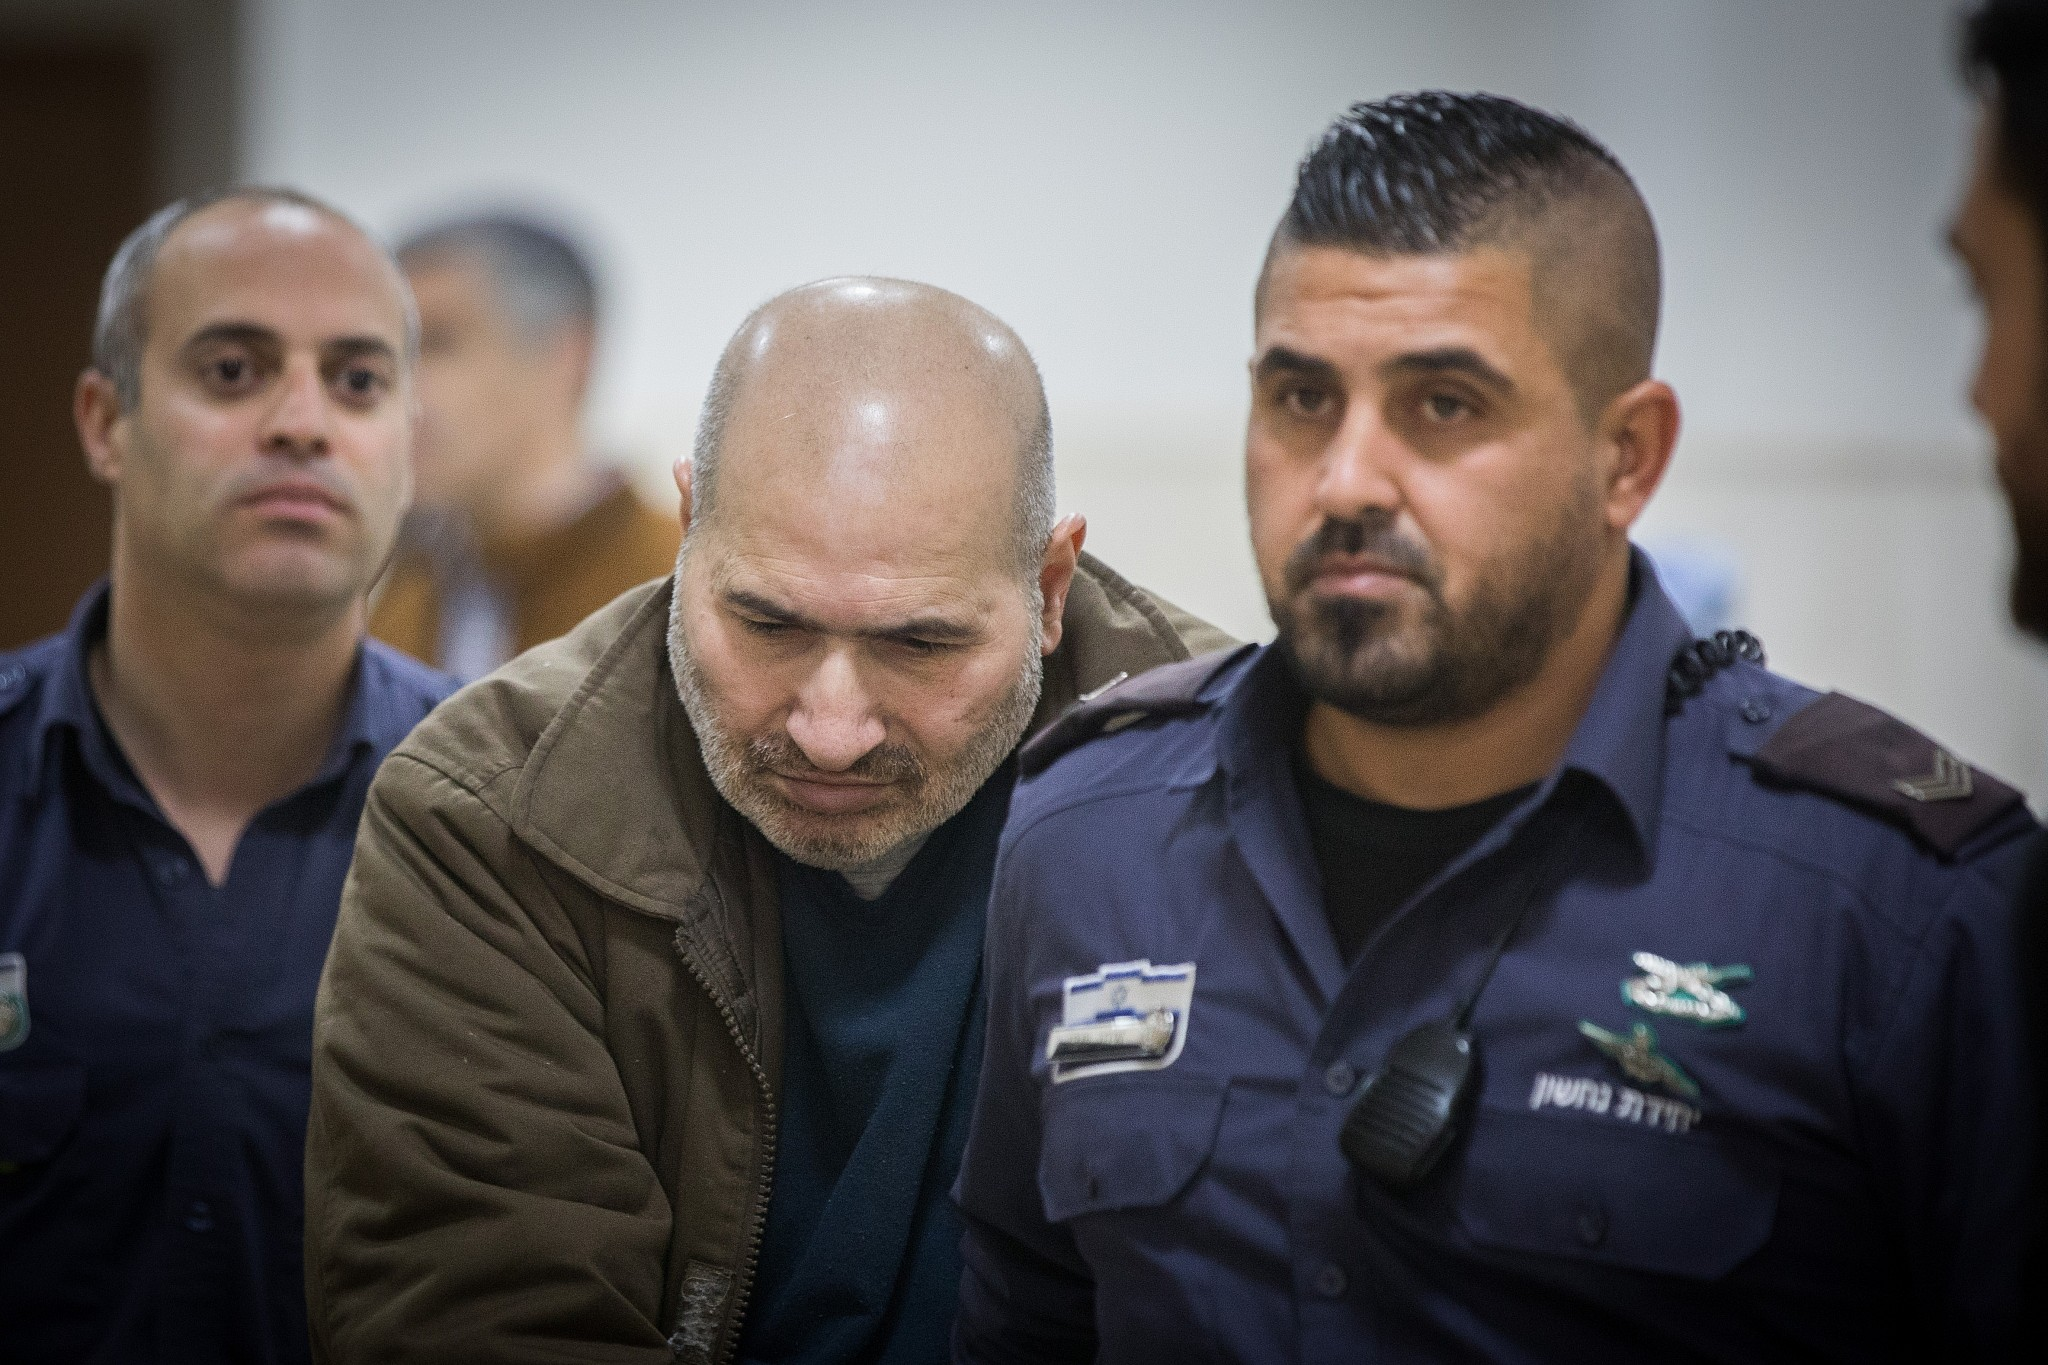 Palestinian jailed for life over selling land to Jews